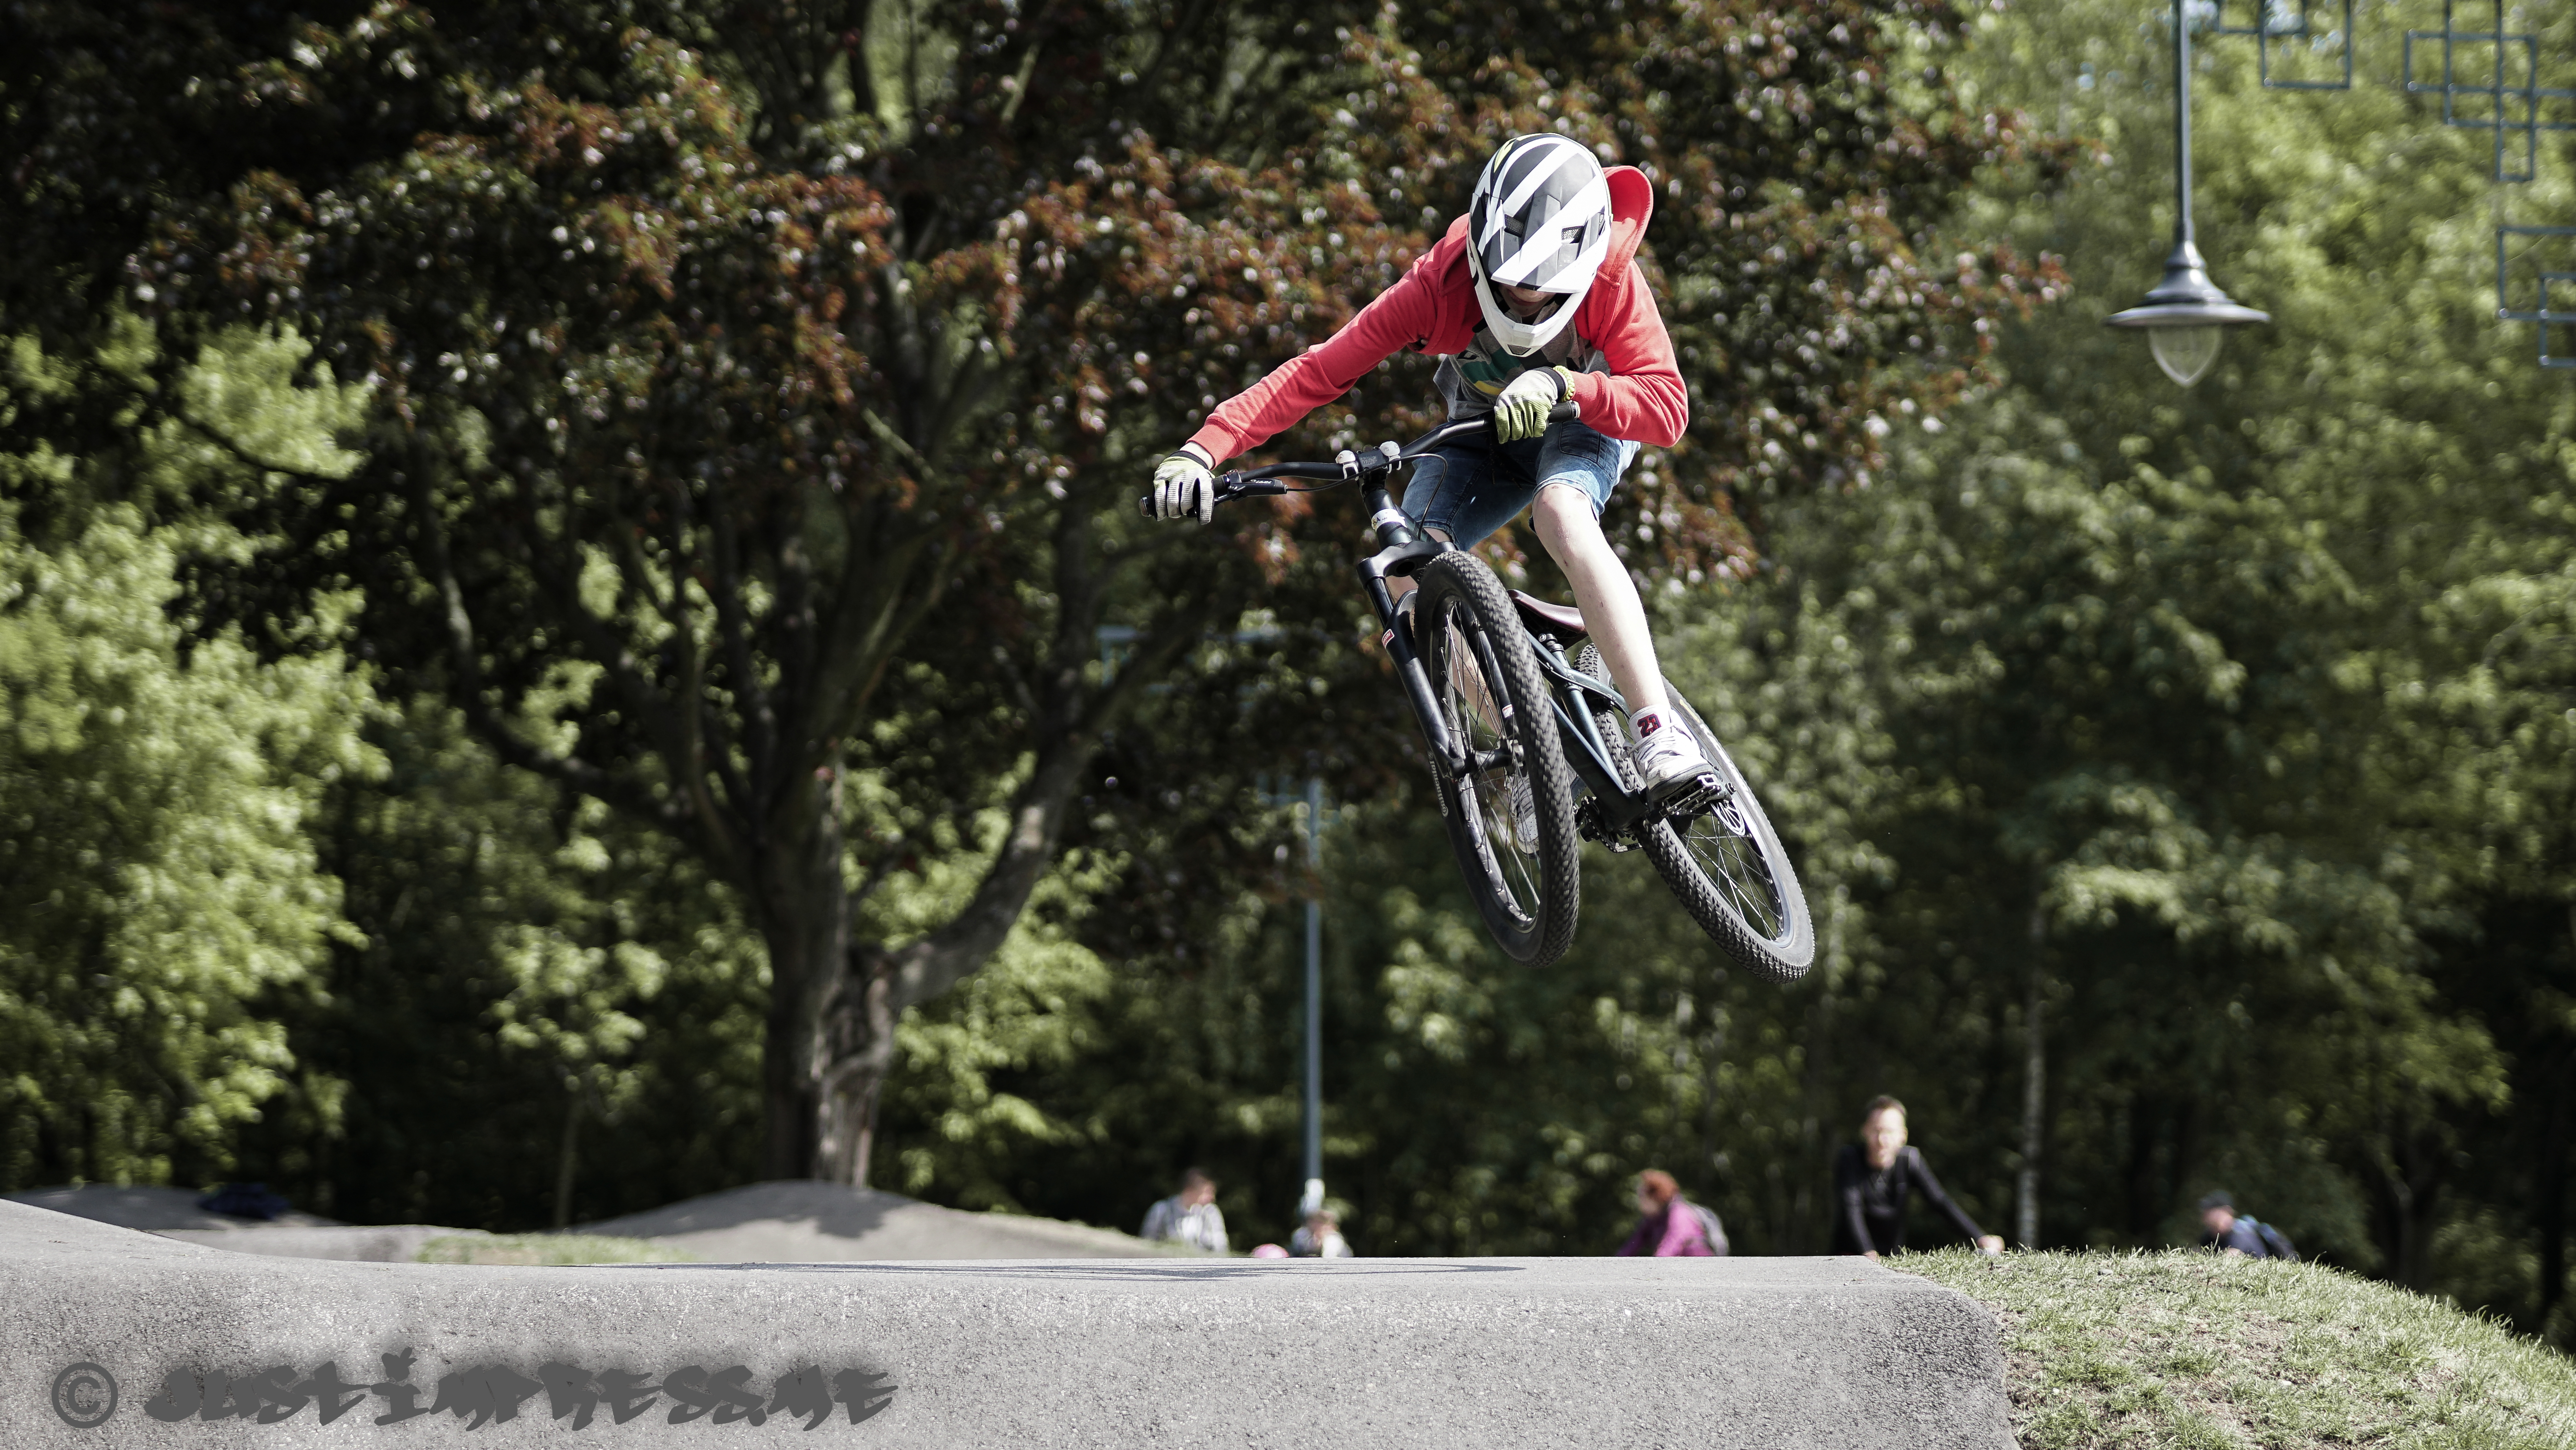 Young at heart – Pump track Lodz Zdrowie 2018